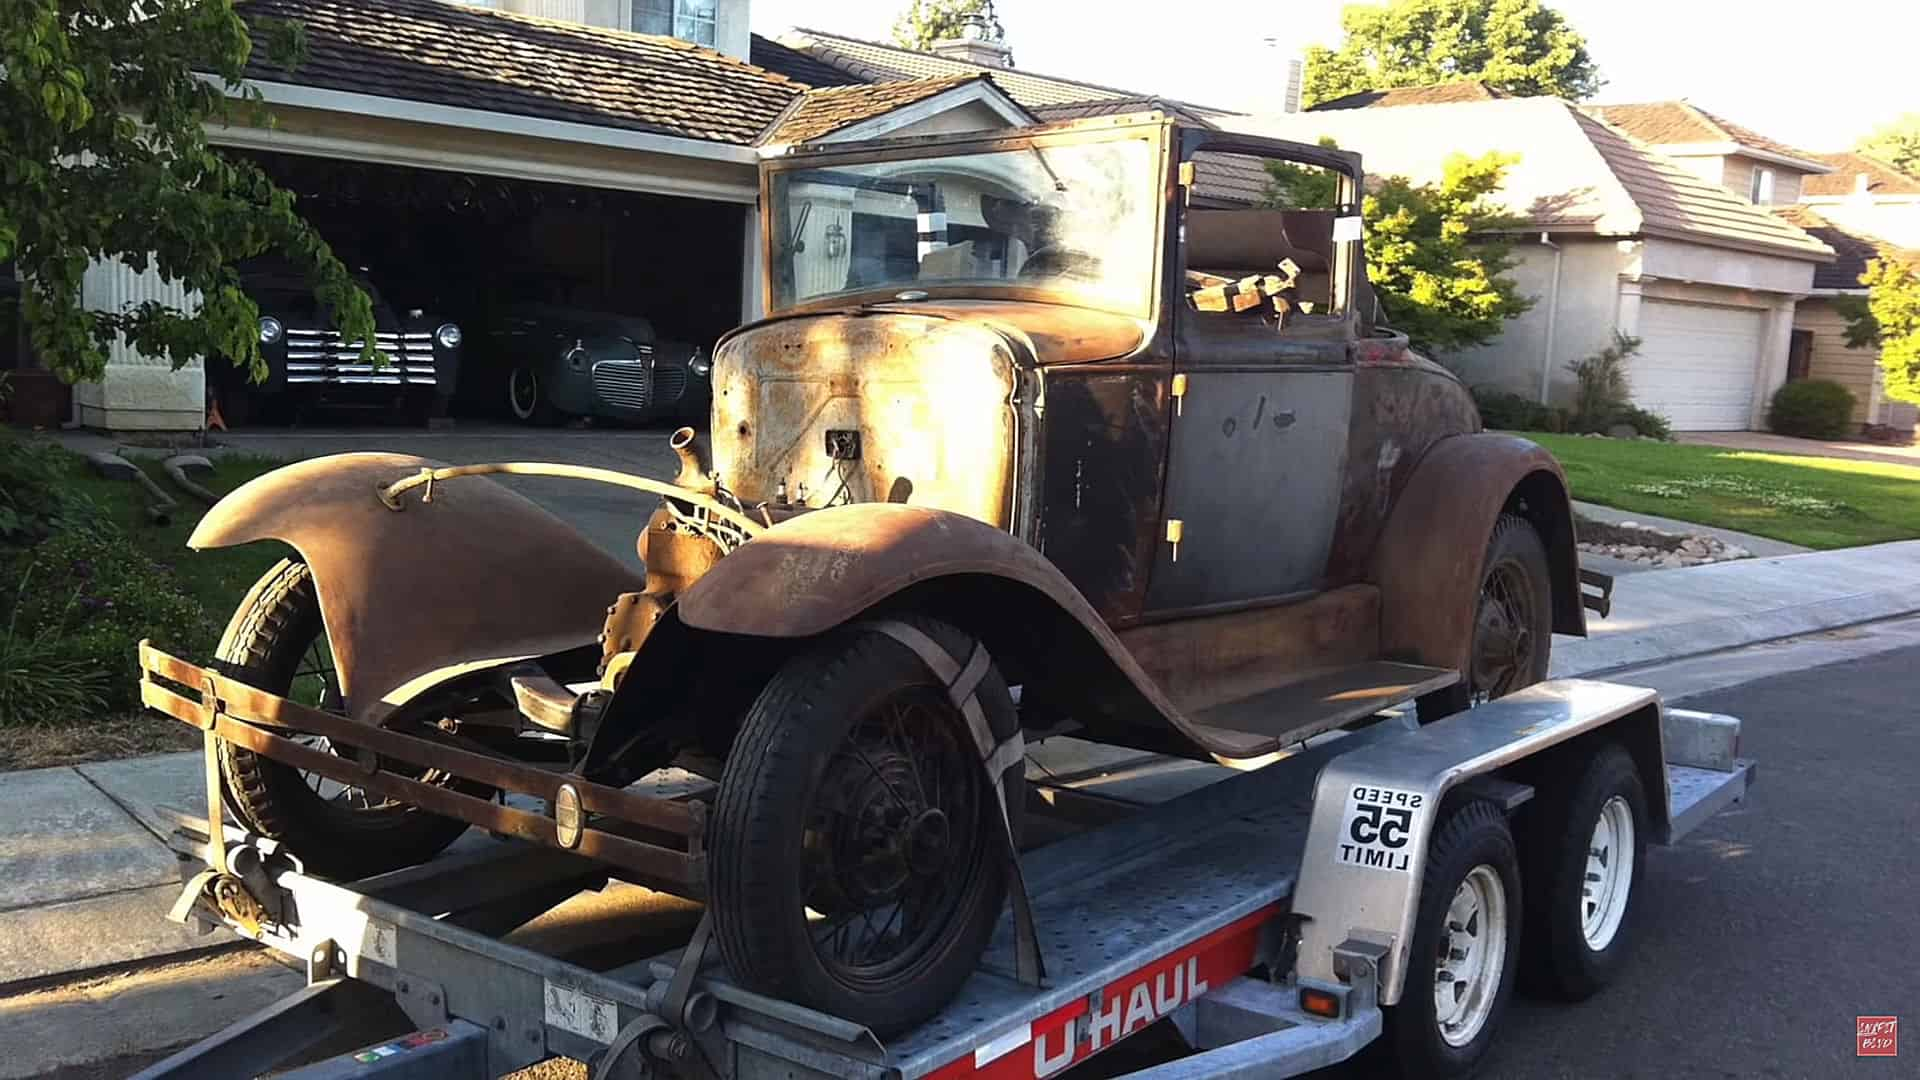 Luis Gonzales' 1930 Ford Model A Sport Coupe ~ Before